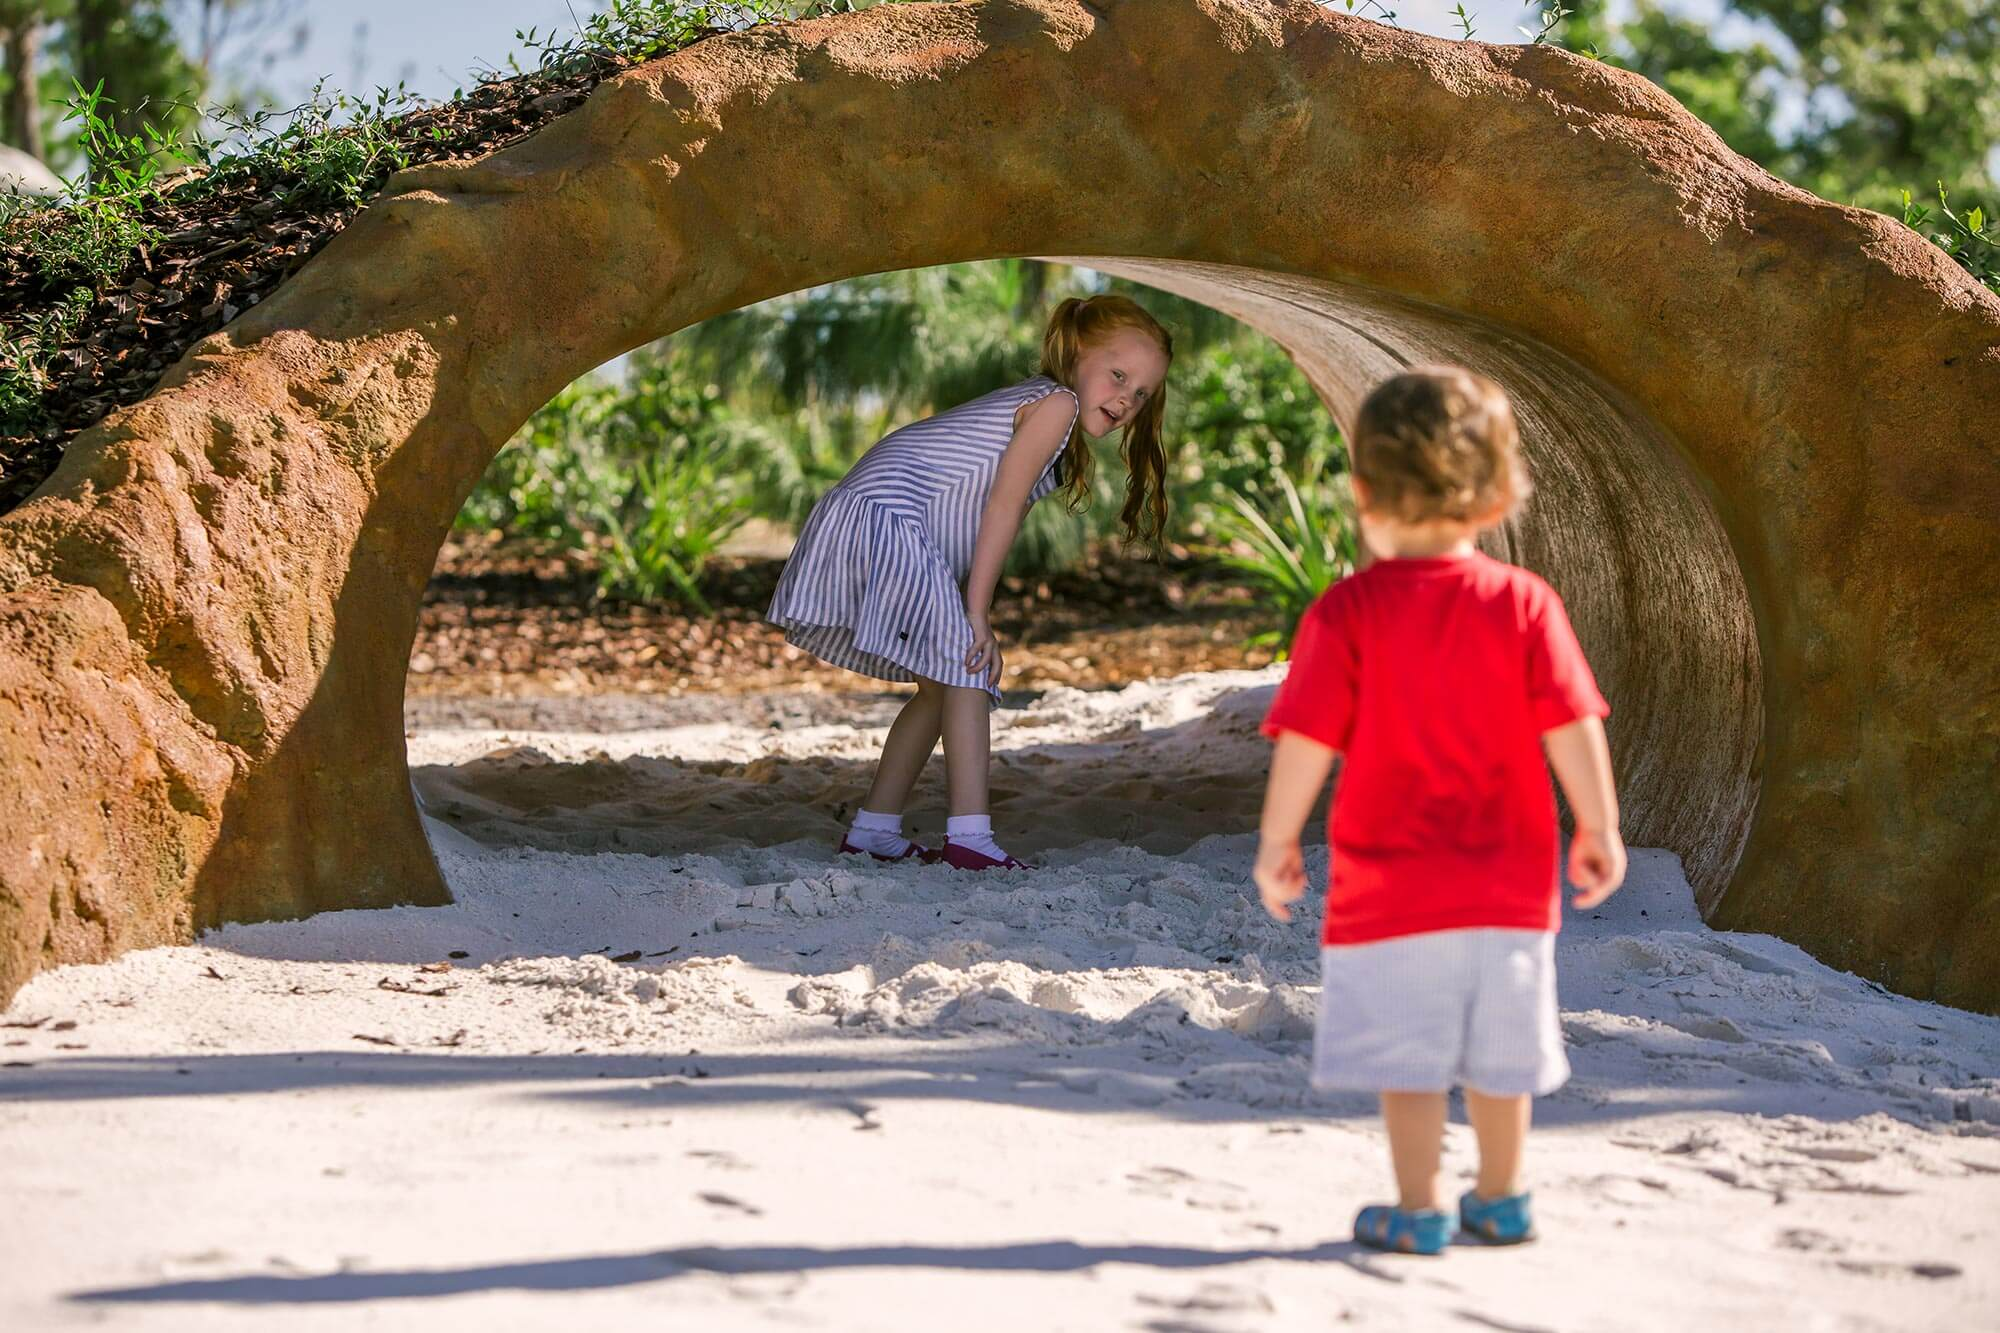 2 kids playing in Gopher Tortoise Burrow at Hammock Hollow in Bok Tower Gardens.